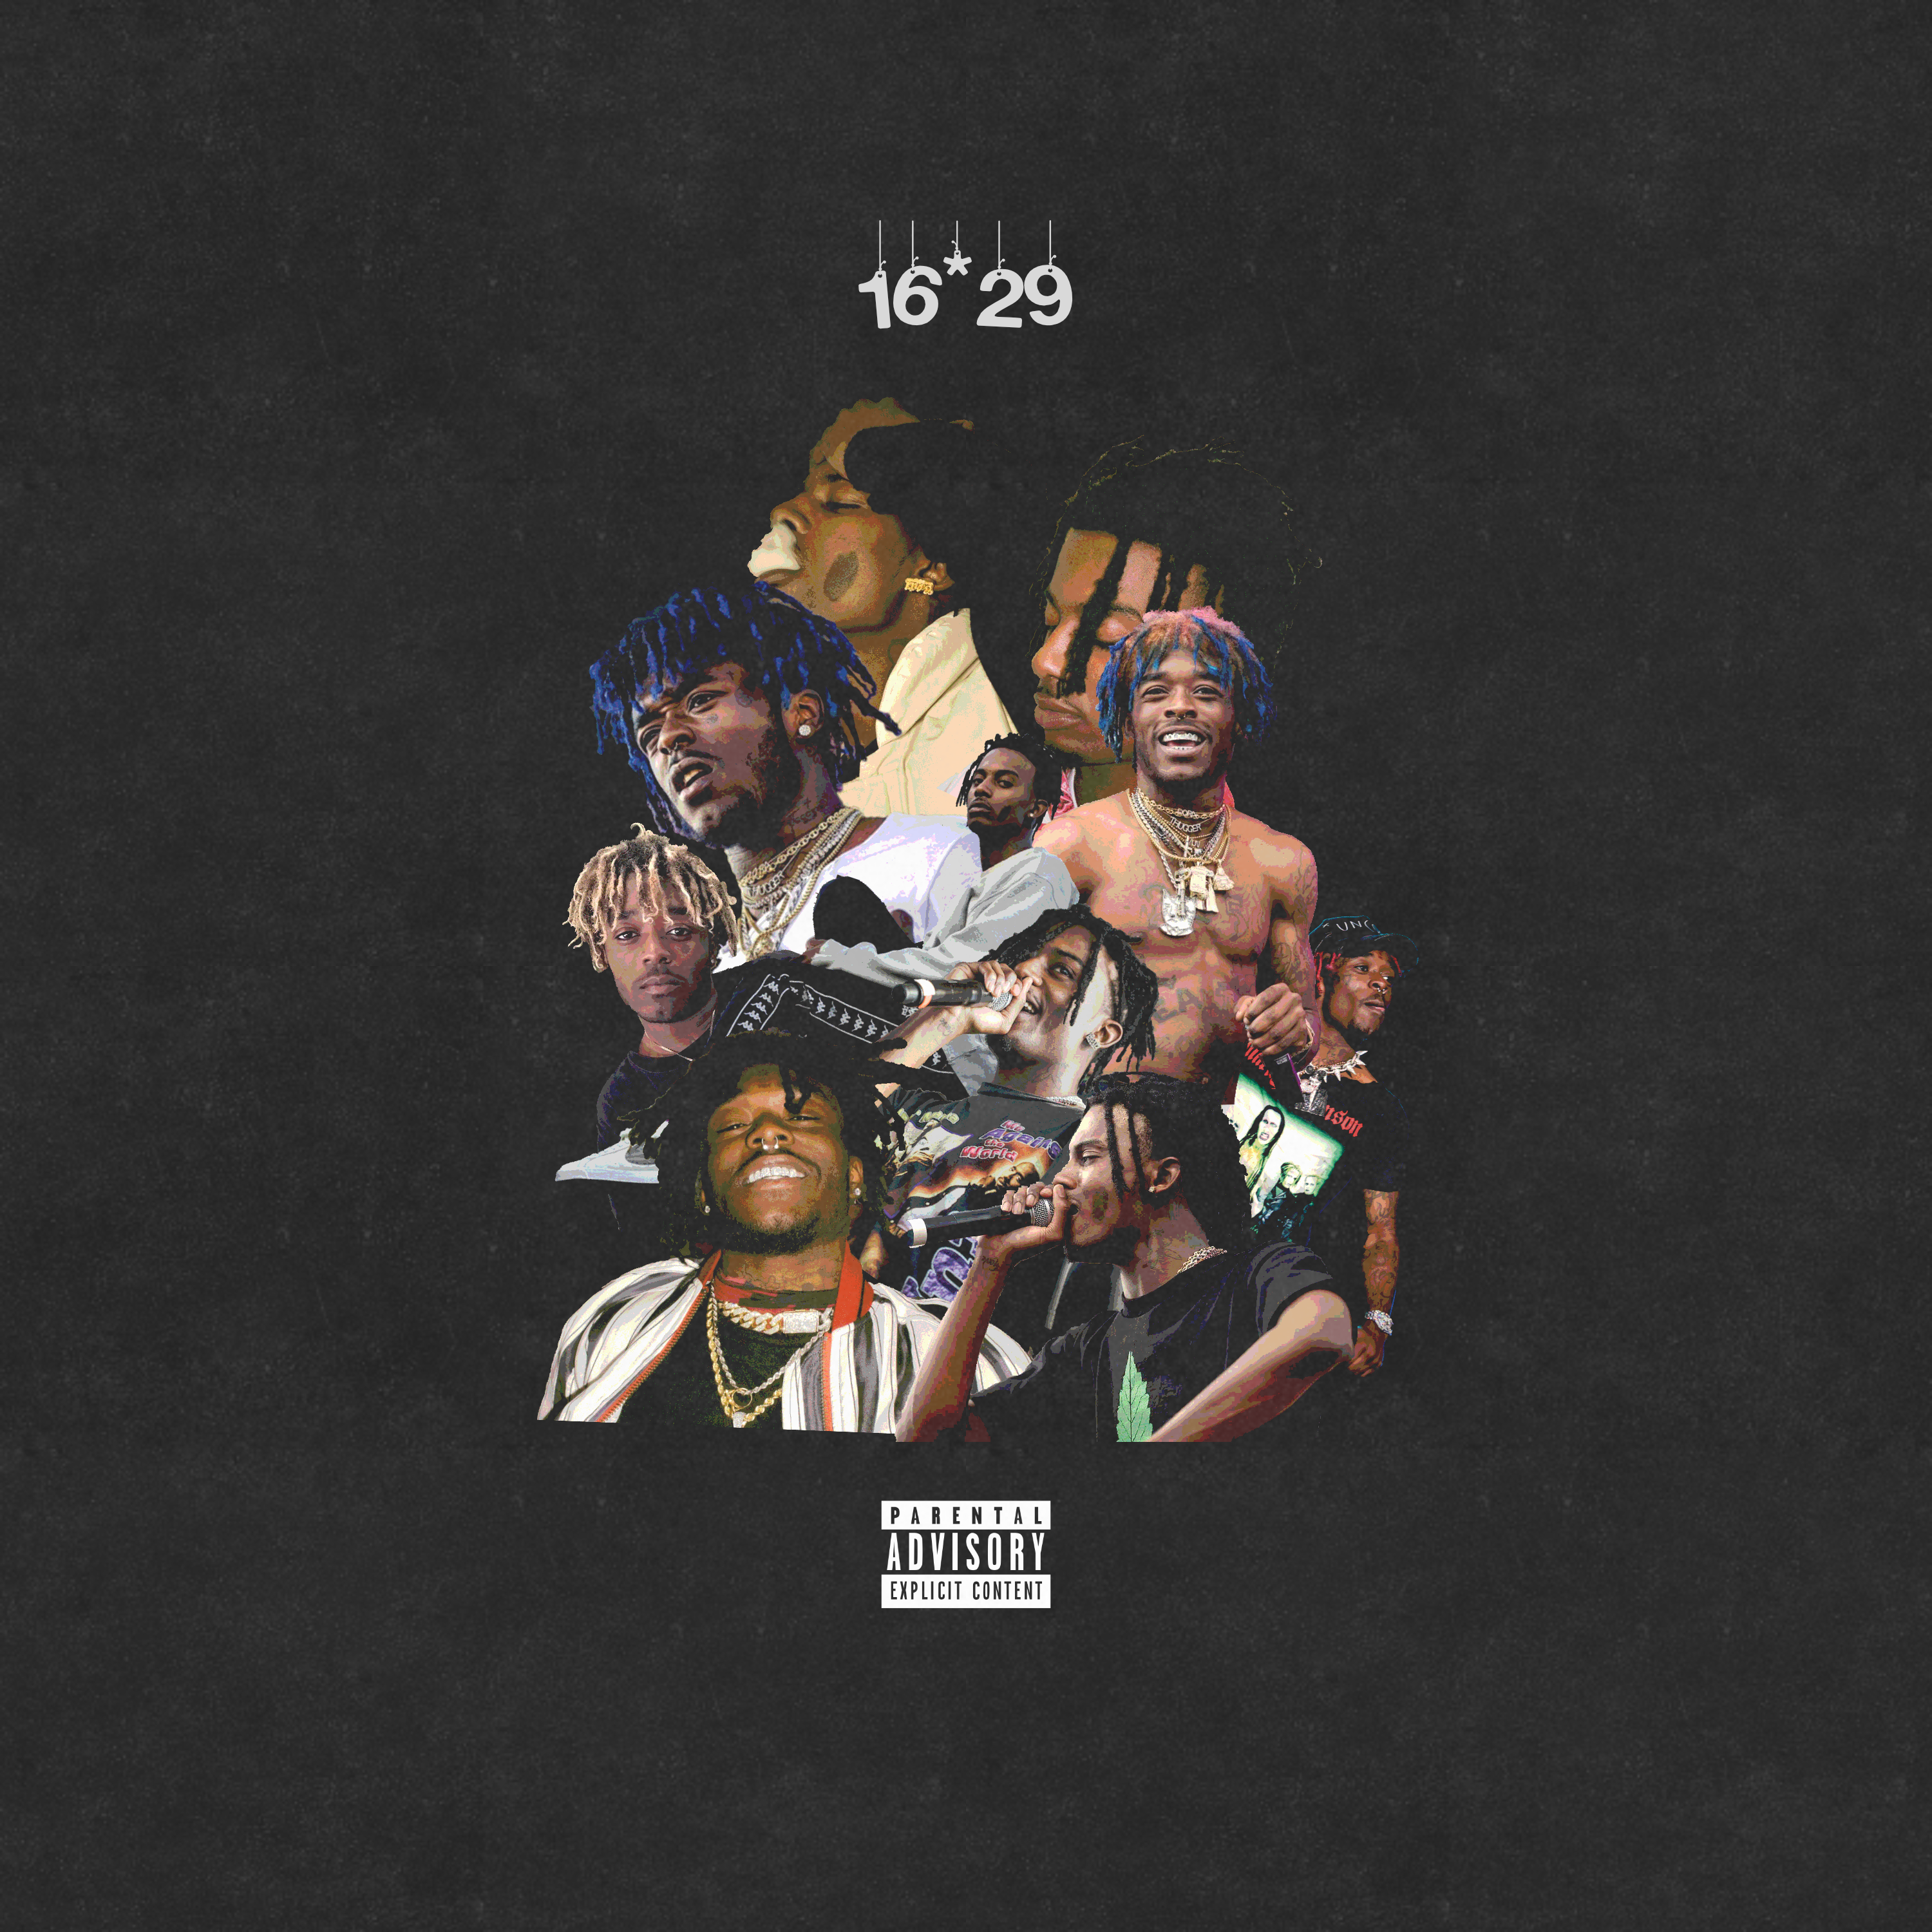 Lil Uzi Vert Playboi Carti Wallpapers Wallpaper Cave Hd wallpapers and background images. lil uzi vert playboi carti wallpapers